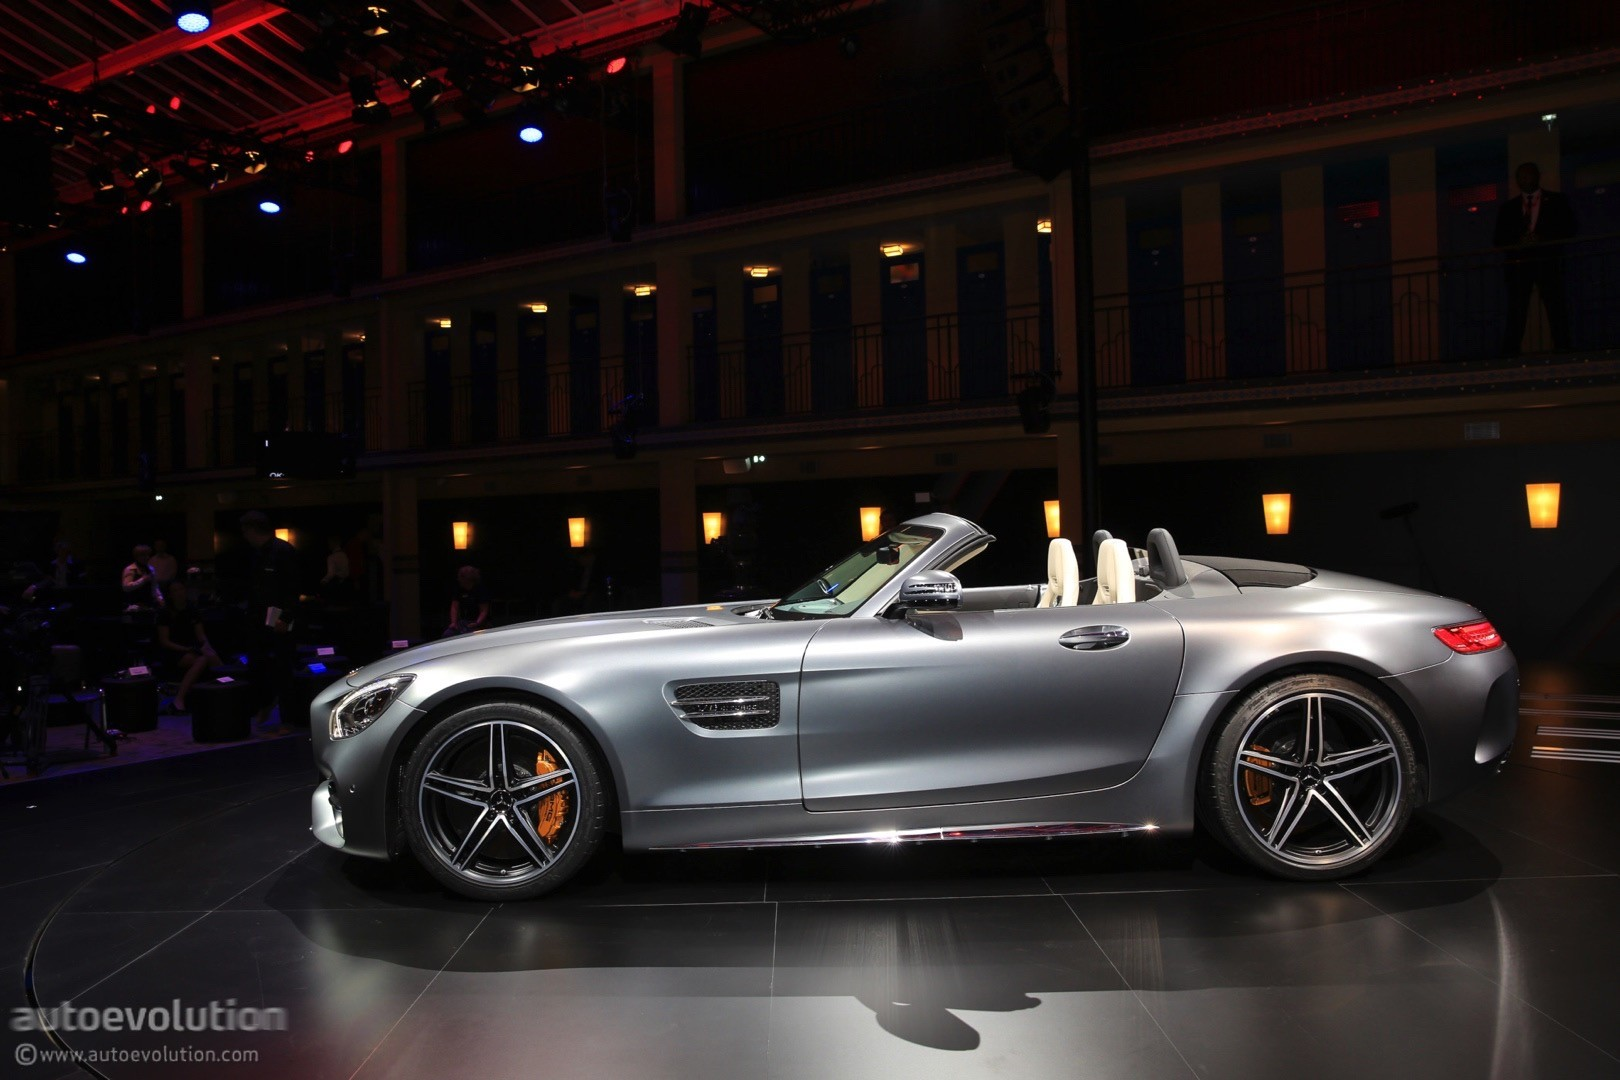 mercedes amg refreshes price list for amg gt family gt r packs a surprise autoevolution. Black Bedroom Furniture Sets. Home Design Ideas